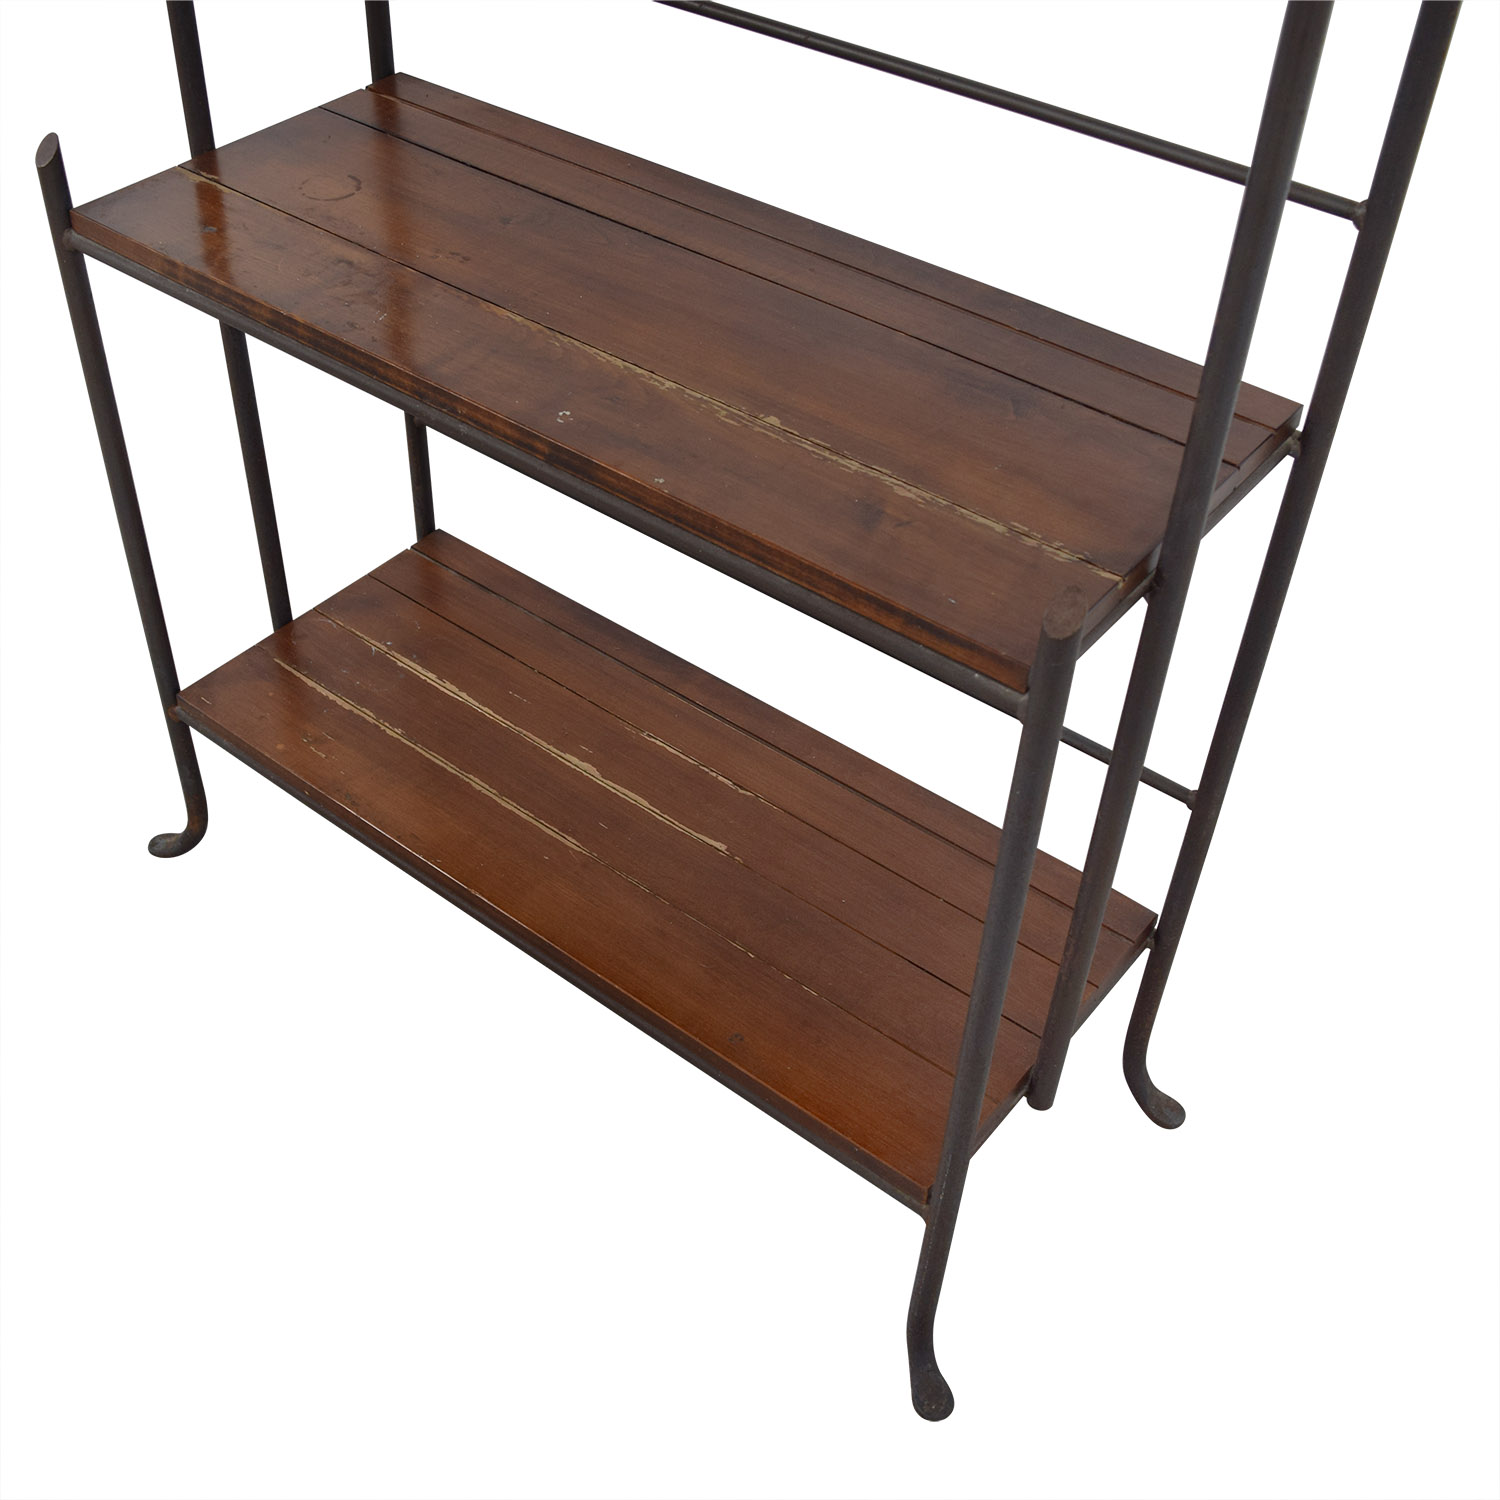 Crate & Barrel Wood and Metal Book Case / Bookcases & Shelving